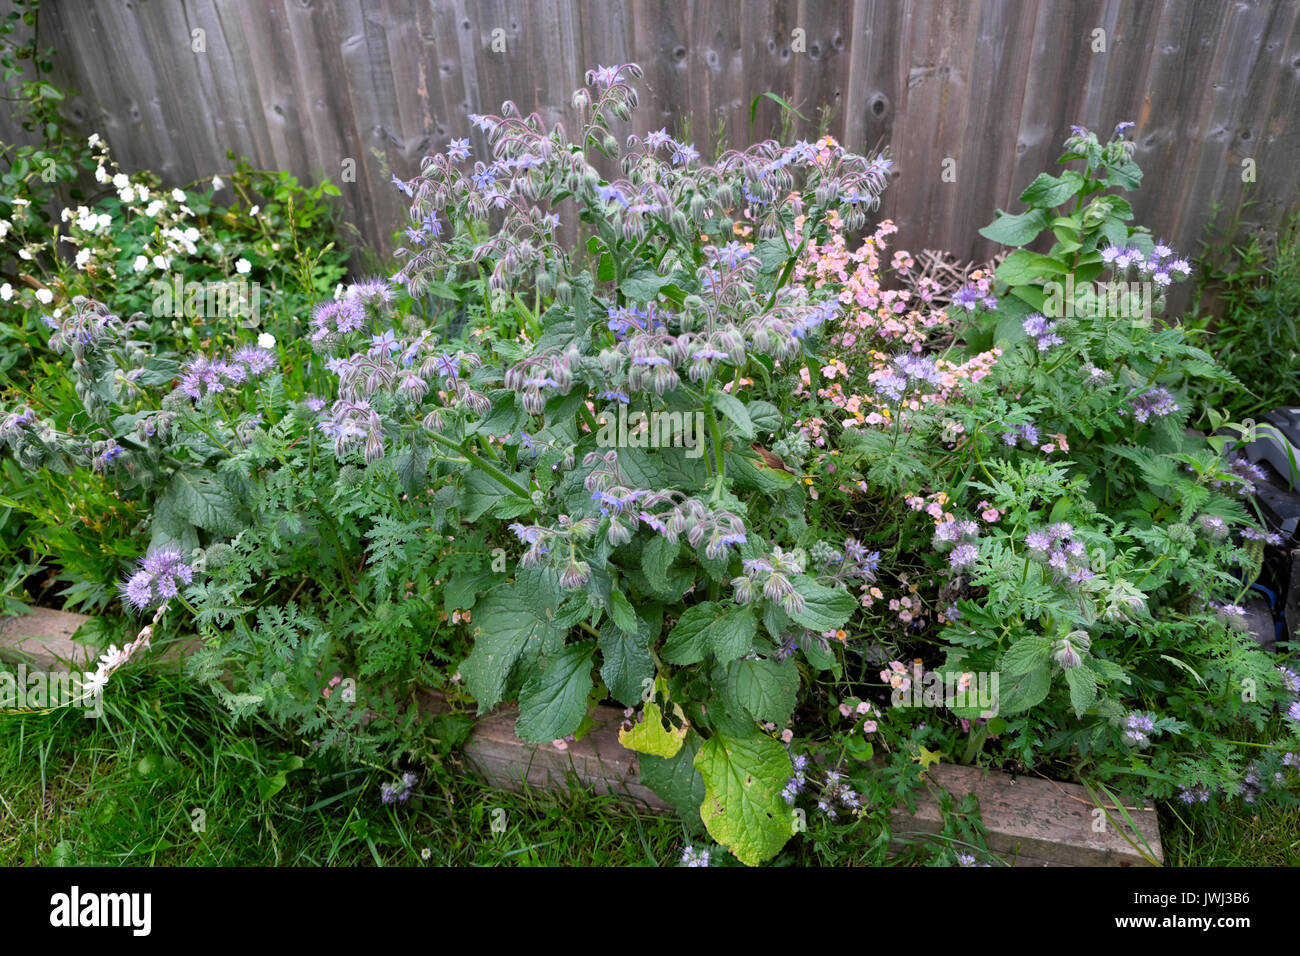 Perennial plants with small pink flowers stock photos perennial blue borage flowers in bloom and pink perennial wallflowers in a small garden with a wooden mightylinksfo